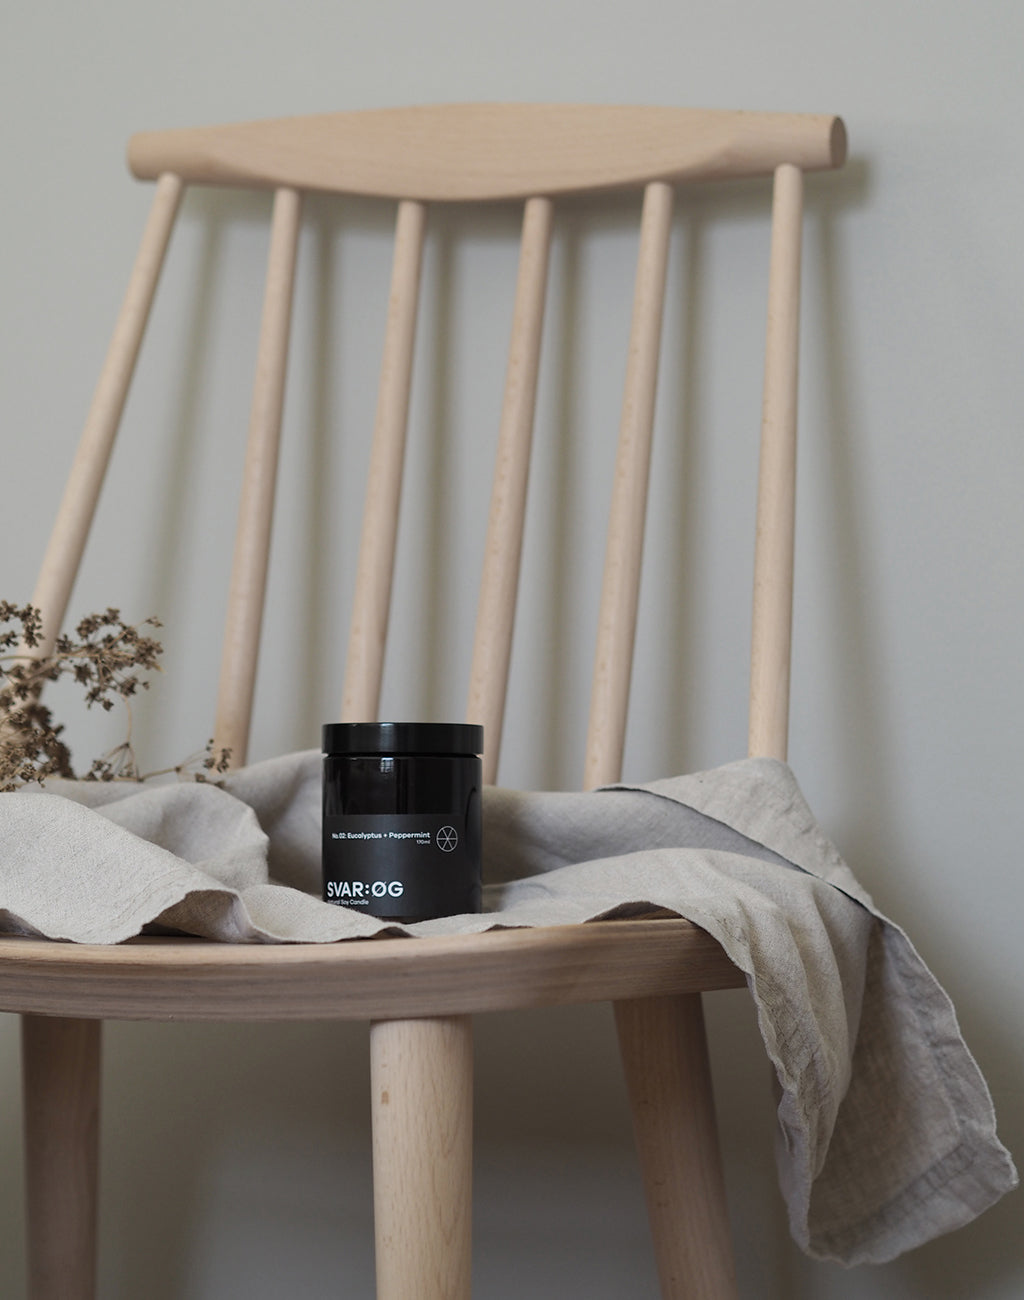 Eucalyptus + Peppermint | Candle